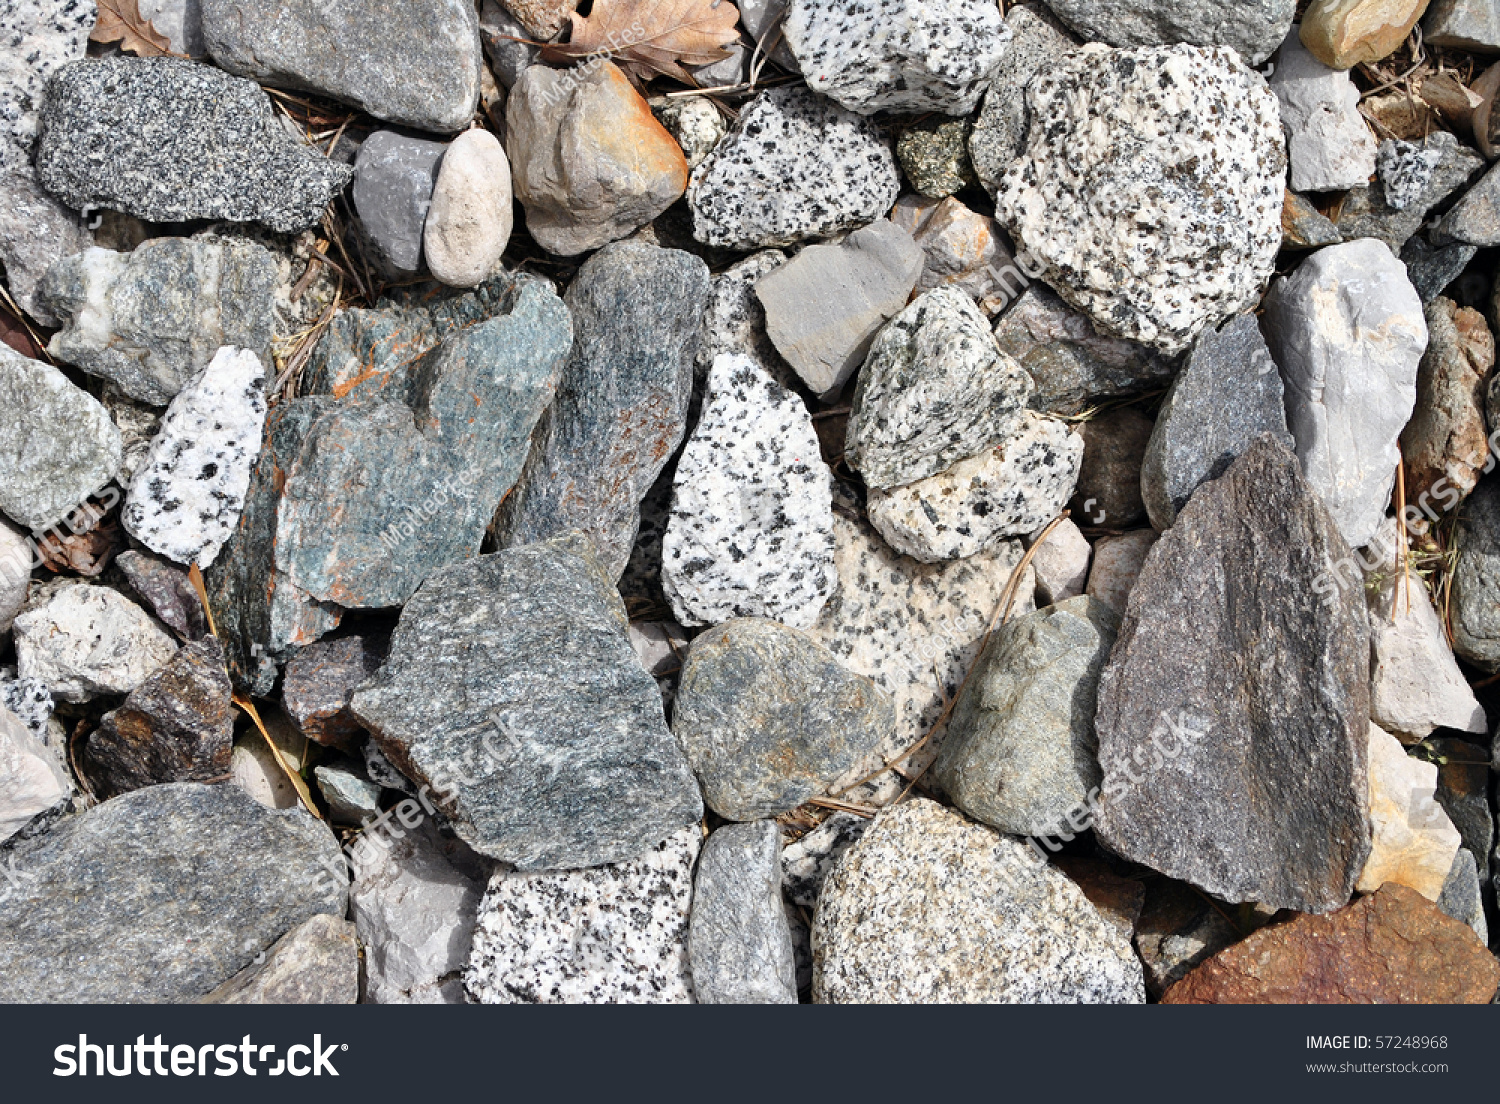 Sharp Irregular Stones Various Types Colorful Stock Photo 57248968 ...